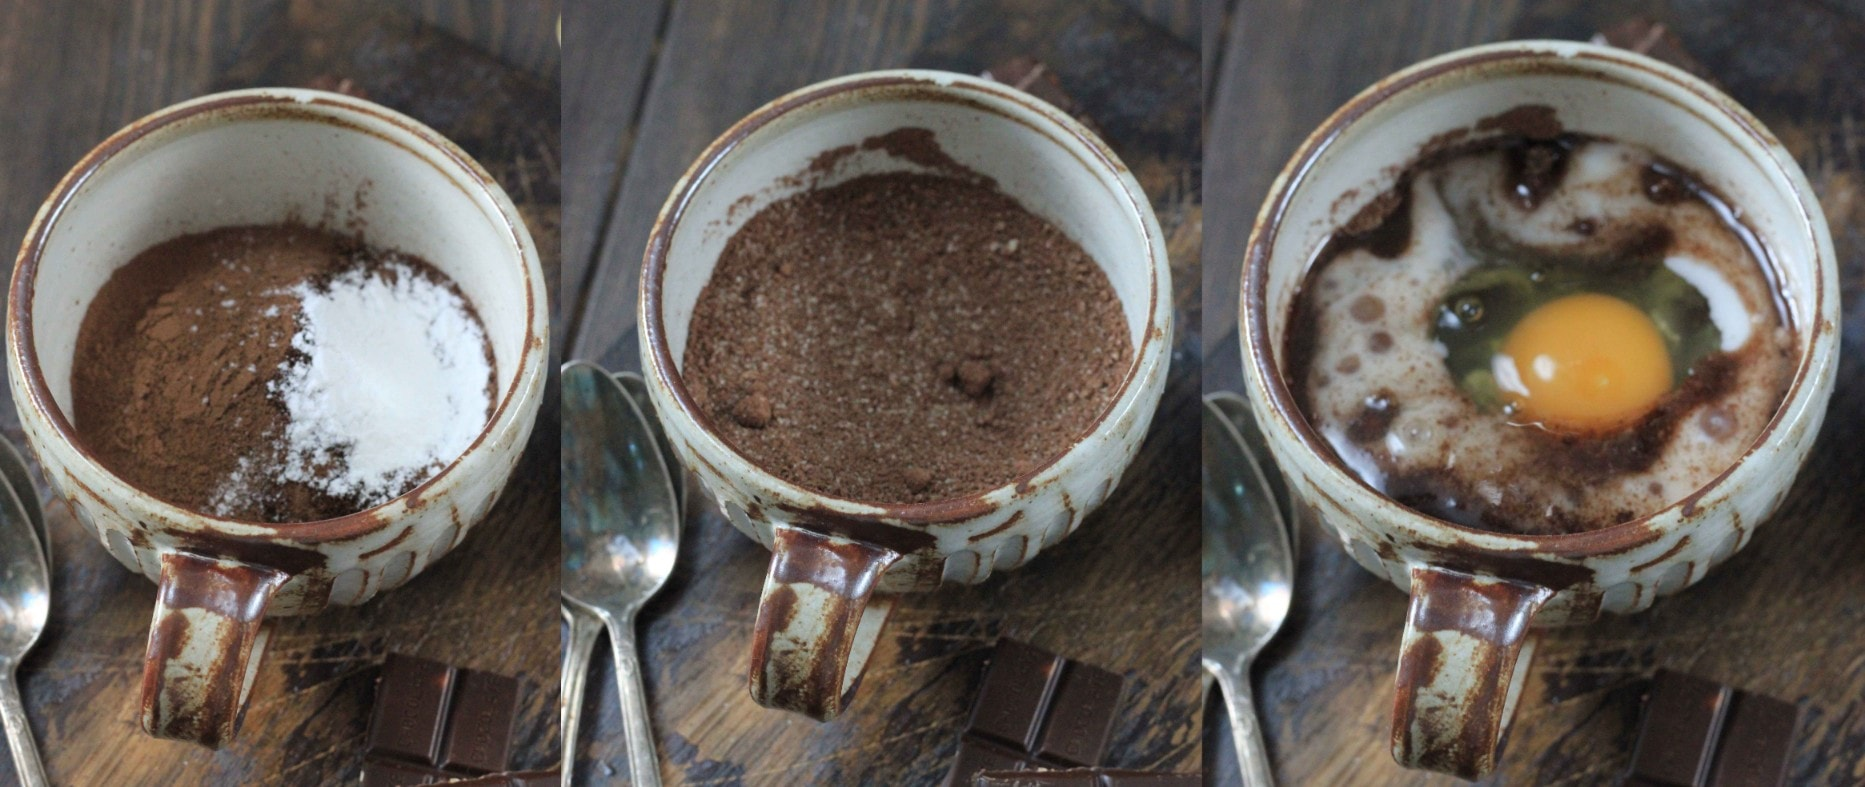 Steps showing how to make a keto mug cake that's completely dairy free.